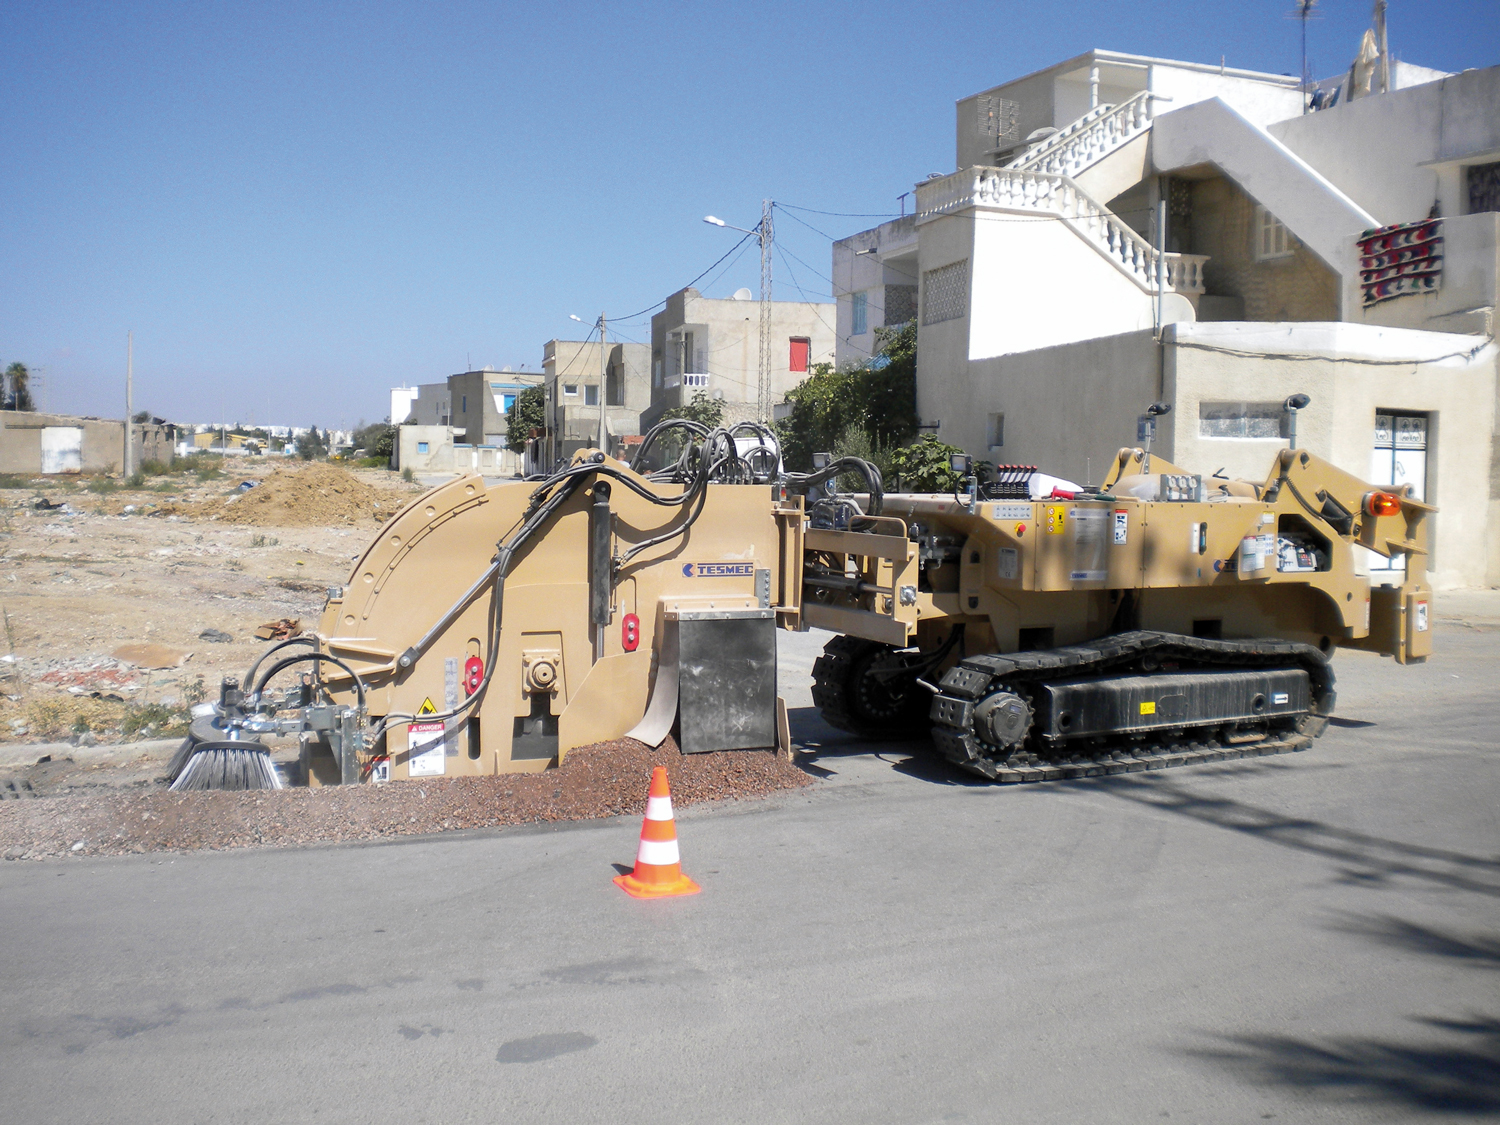 Compact Remote Controlled Trencher Tesmec 300